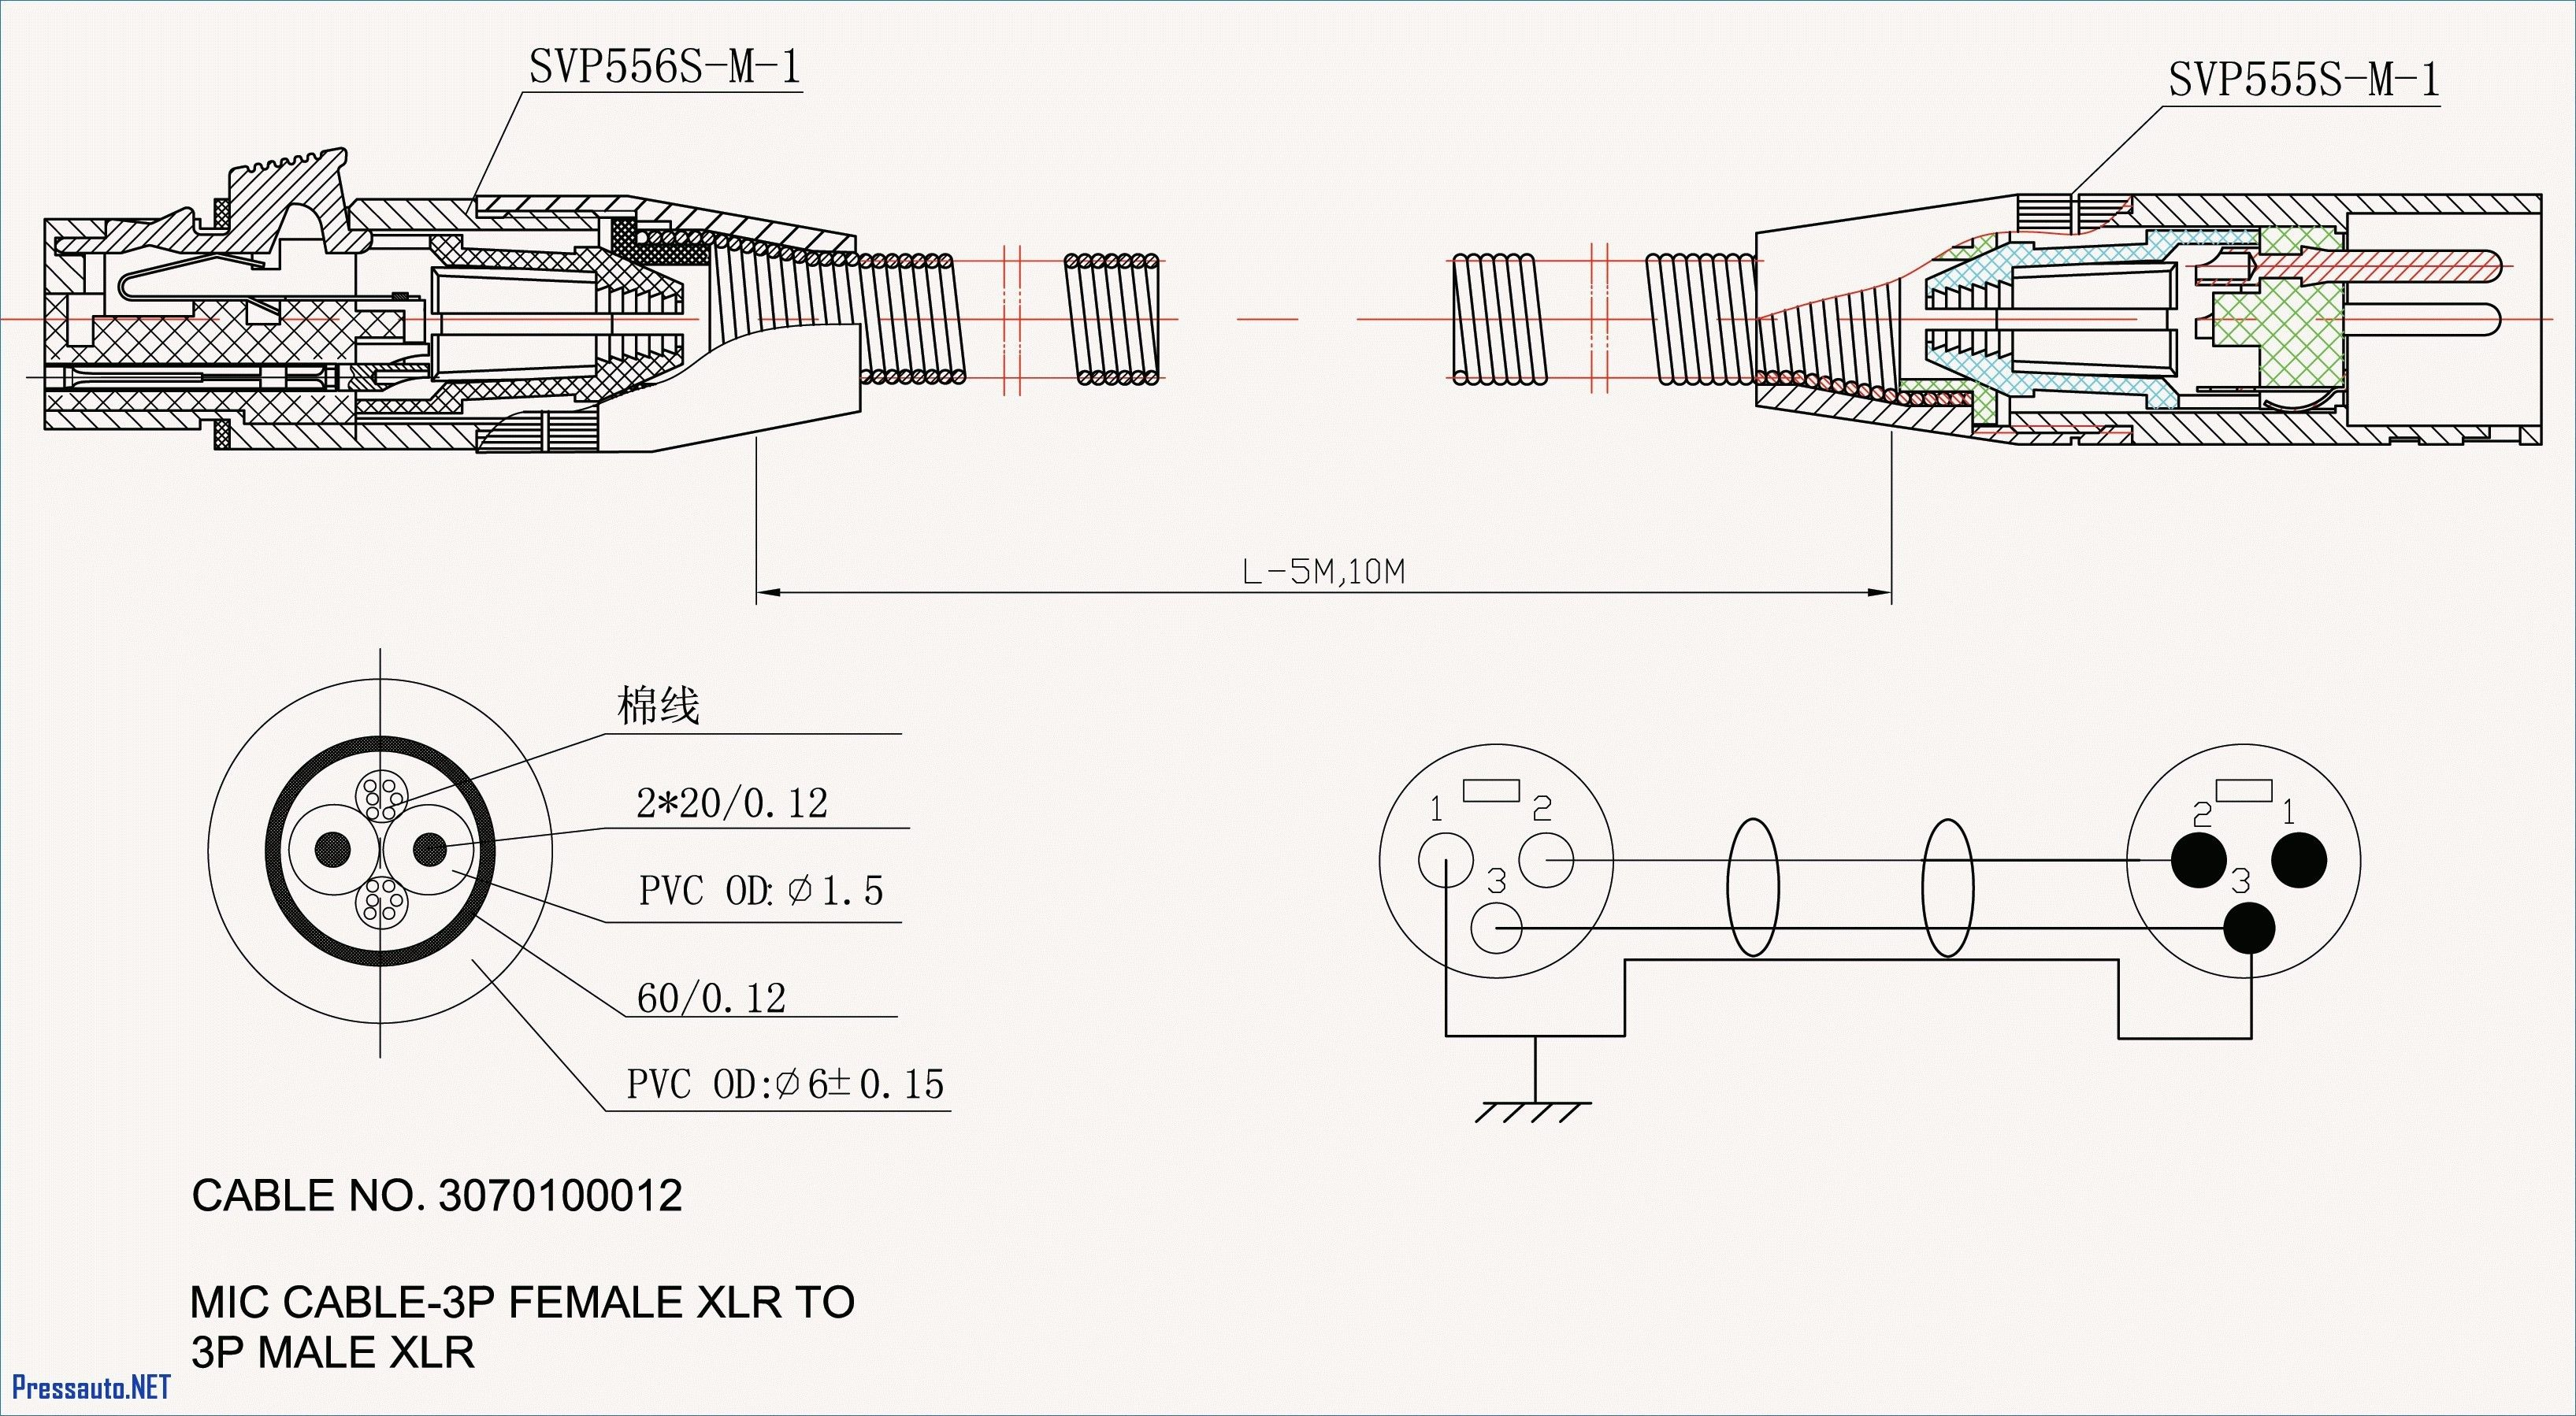 7 Wire Trailer Plug Wiring Diagram In 2020 Electrical Wiring Diagram Trailer Light Wiring Trailer Wiring Diagram